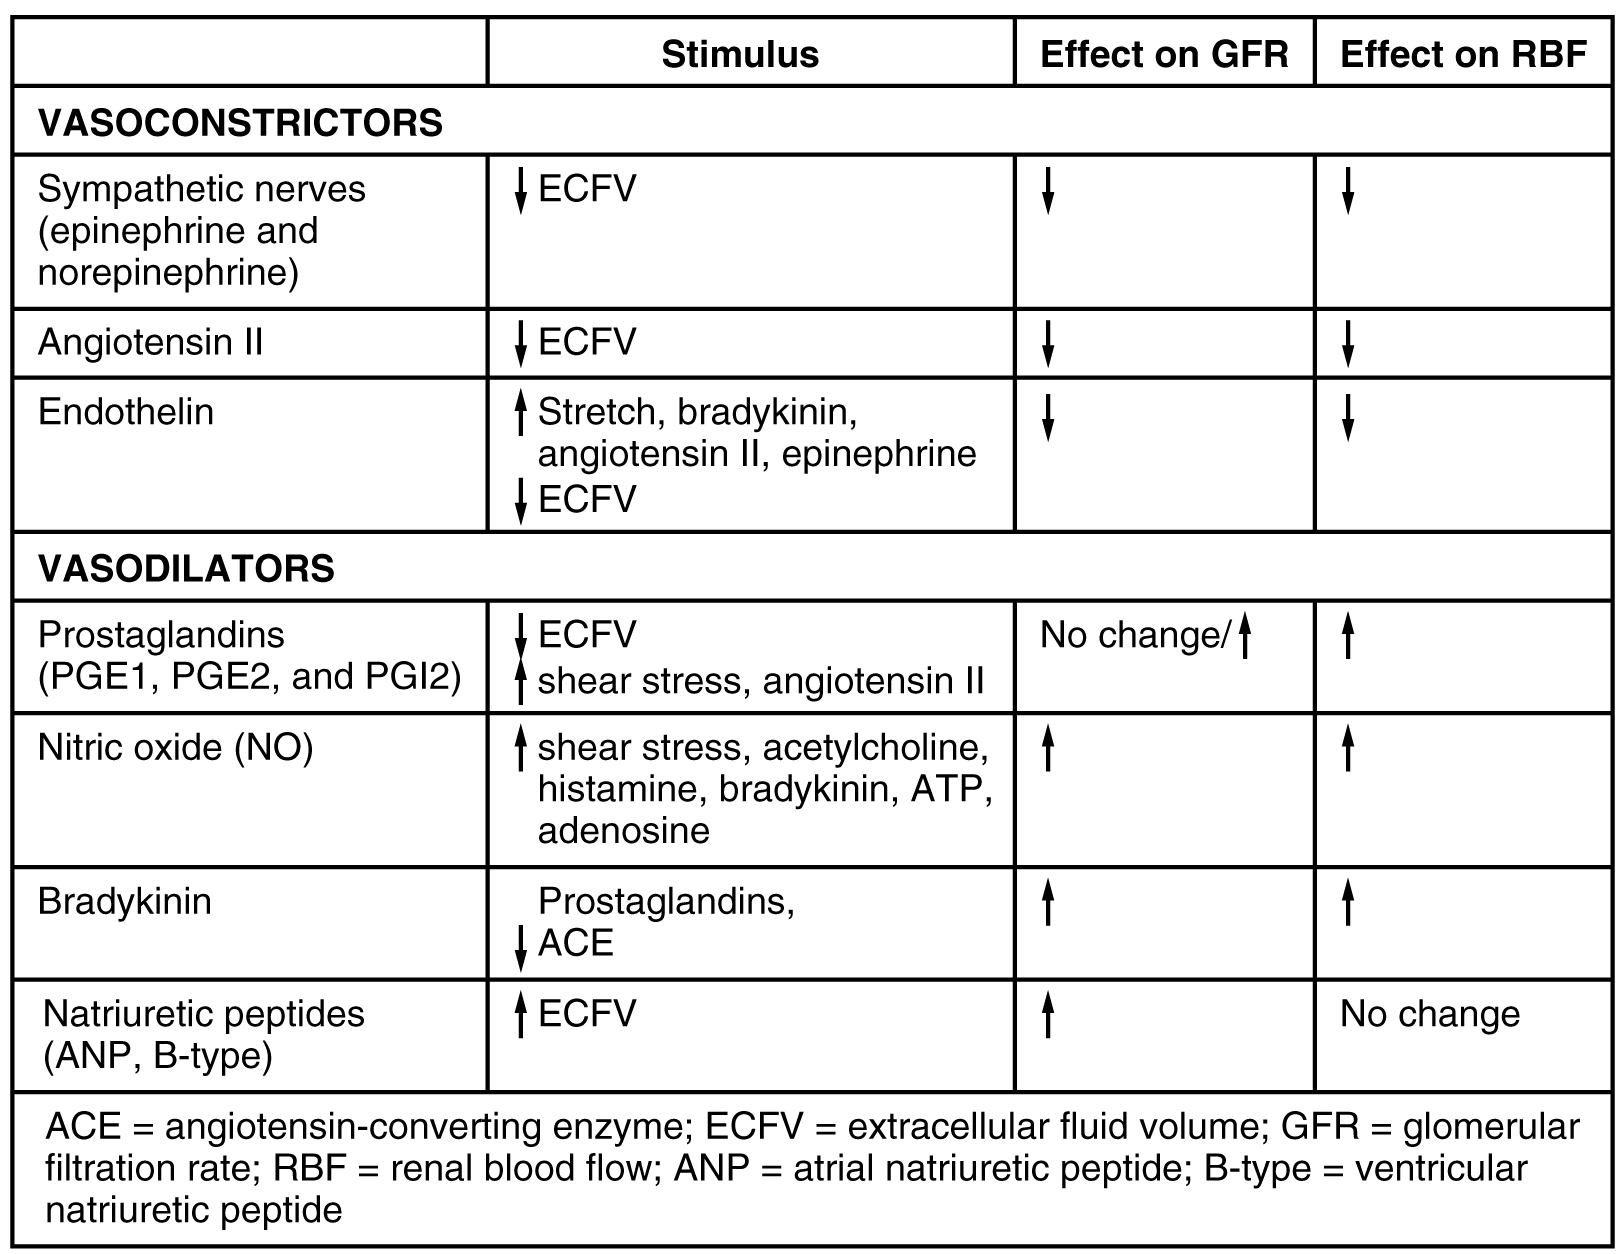 This table shows the stimulus, effect on GFR (glomerular filtration rate), and effect on RBF (renal blood flow) for a variety of vasoconstrictors and vasodilators. The first vasoconstrictor is input from the sympathetic nerves that result in the secretion of epinephrine and norepinephrine. The stimulus is a decrease in extracellular fluid volume (ECFV). The second vasoconstrictor is angiotensin II. The stimulus is a decrease in ECFV. The third vasoconstrictor is endothelin. The stimulus is an increase in stretch, bradykinin, angiotensin II, and epinephrine along with a decrease in ECFV. All three of these vasoconstrictors decrease GFR and also decrease RBF. The first vasodilator is the prostaglandins PGE1, PGE2, and PGI2. The stimulus is a decrease in ECFV, an increase in shear stress, and  an increase in angiotensin II. The second vasodilator is nitric oxide (NO). The stimulus is increasing shear stress, acetylcholine, histamine, bradykinin, ATP, and adenosine. The third vasodilator is bradykinin. The stimulus is the presence of prostaglandins and a decrease in angiotensin-converting enzyme. The fourth vasodilator is natriuretic peptides, including ANP and B-type. The stimulus is an increase in ECFV. All four of the vasodilators increase GFR and also increase RBF, with the exception of the natriuretic peptides, which cause no change in RBF. Prostaglandins also either increase or have no effect on GFR.